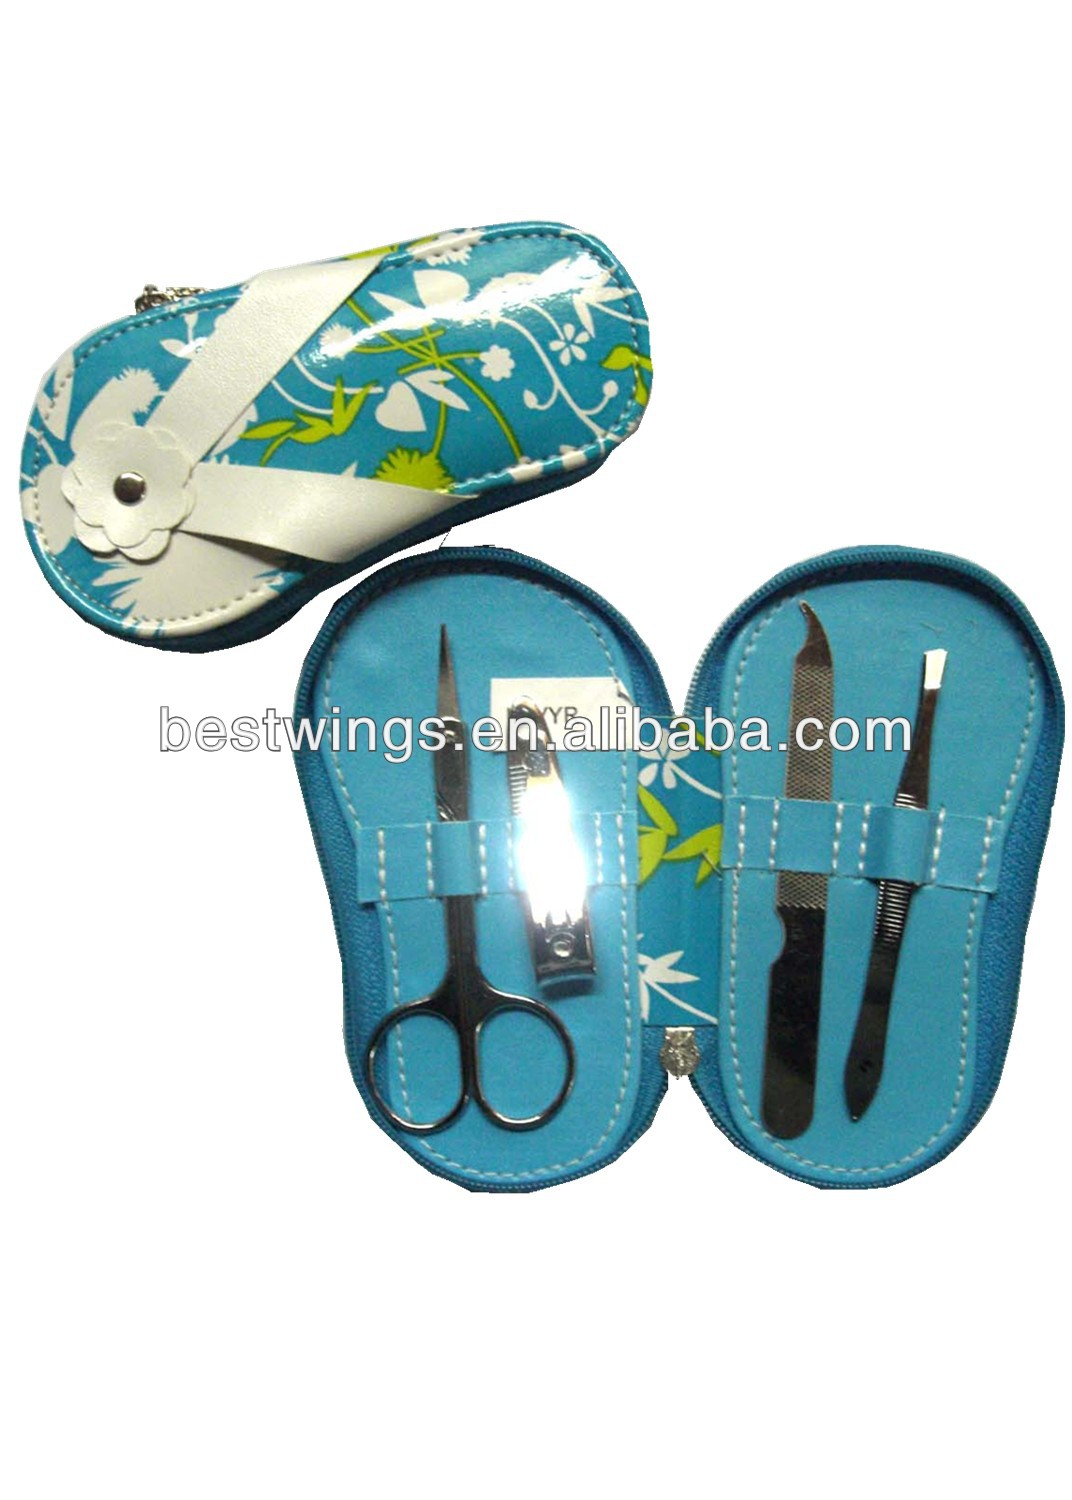 pcs Shoes Shape Manicure Set